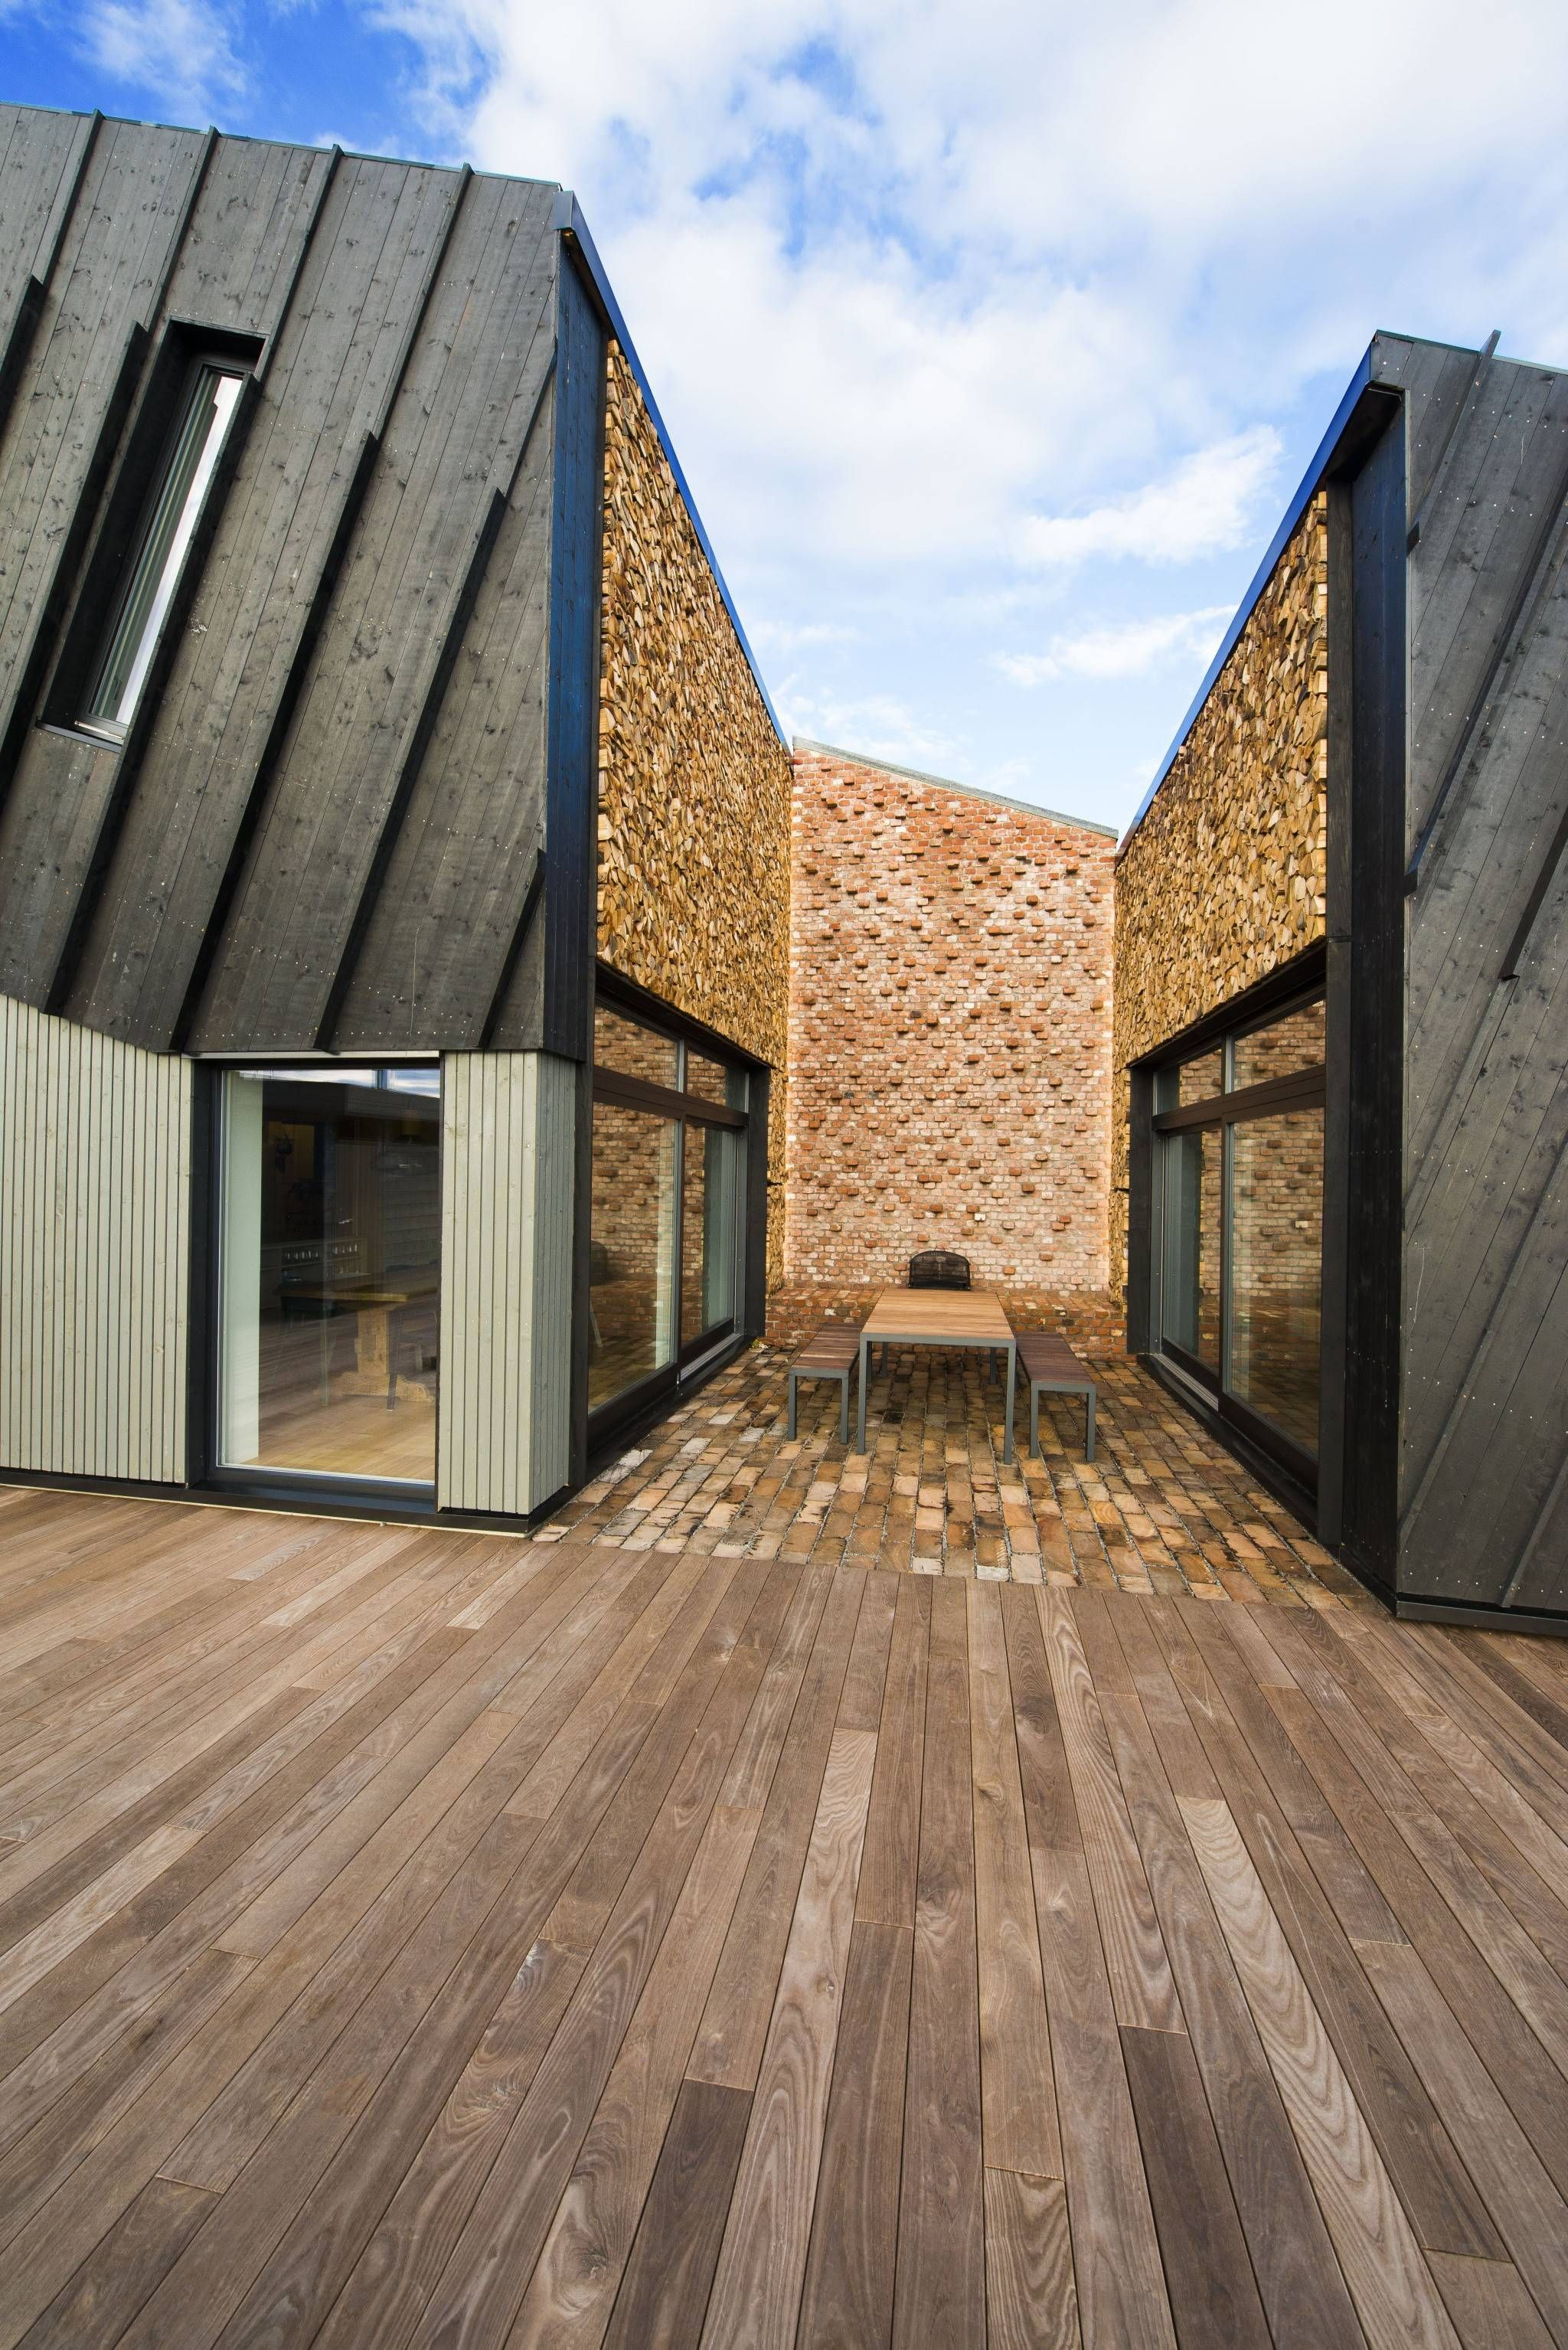 Paal Andre Schwital Focus Has Been Put On Creating A Homely House And The Outdoor Atrium With Fireplace And Hout Architectuur Moderne Architectuur Architectuur